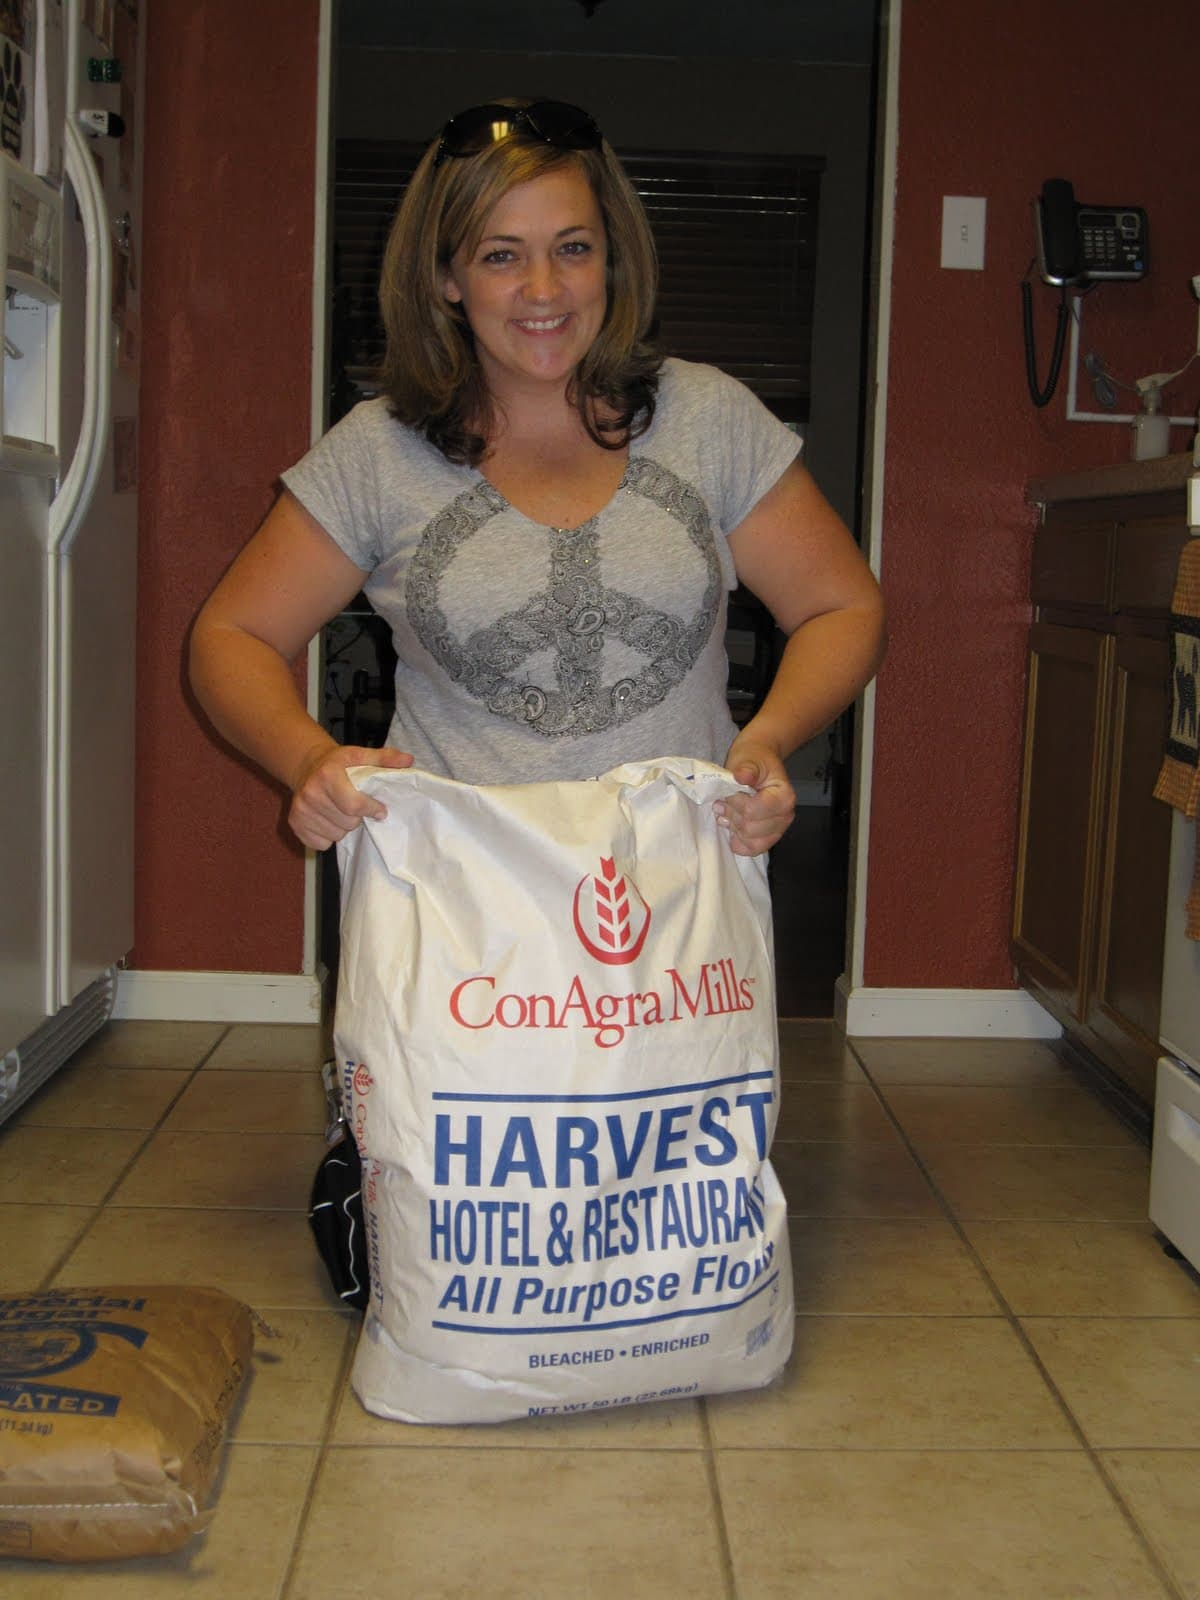 A woman holding up a 50-lb sack of flour